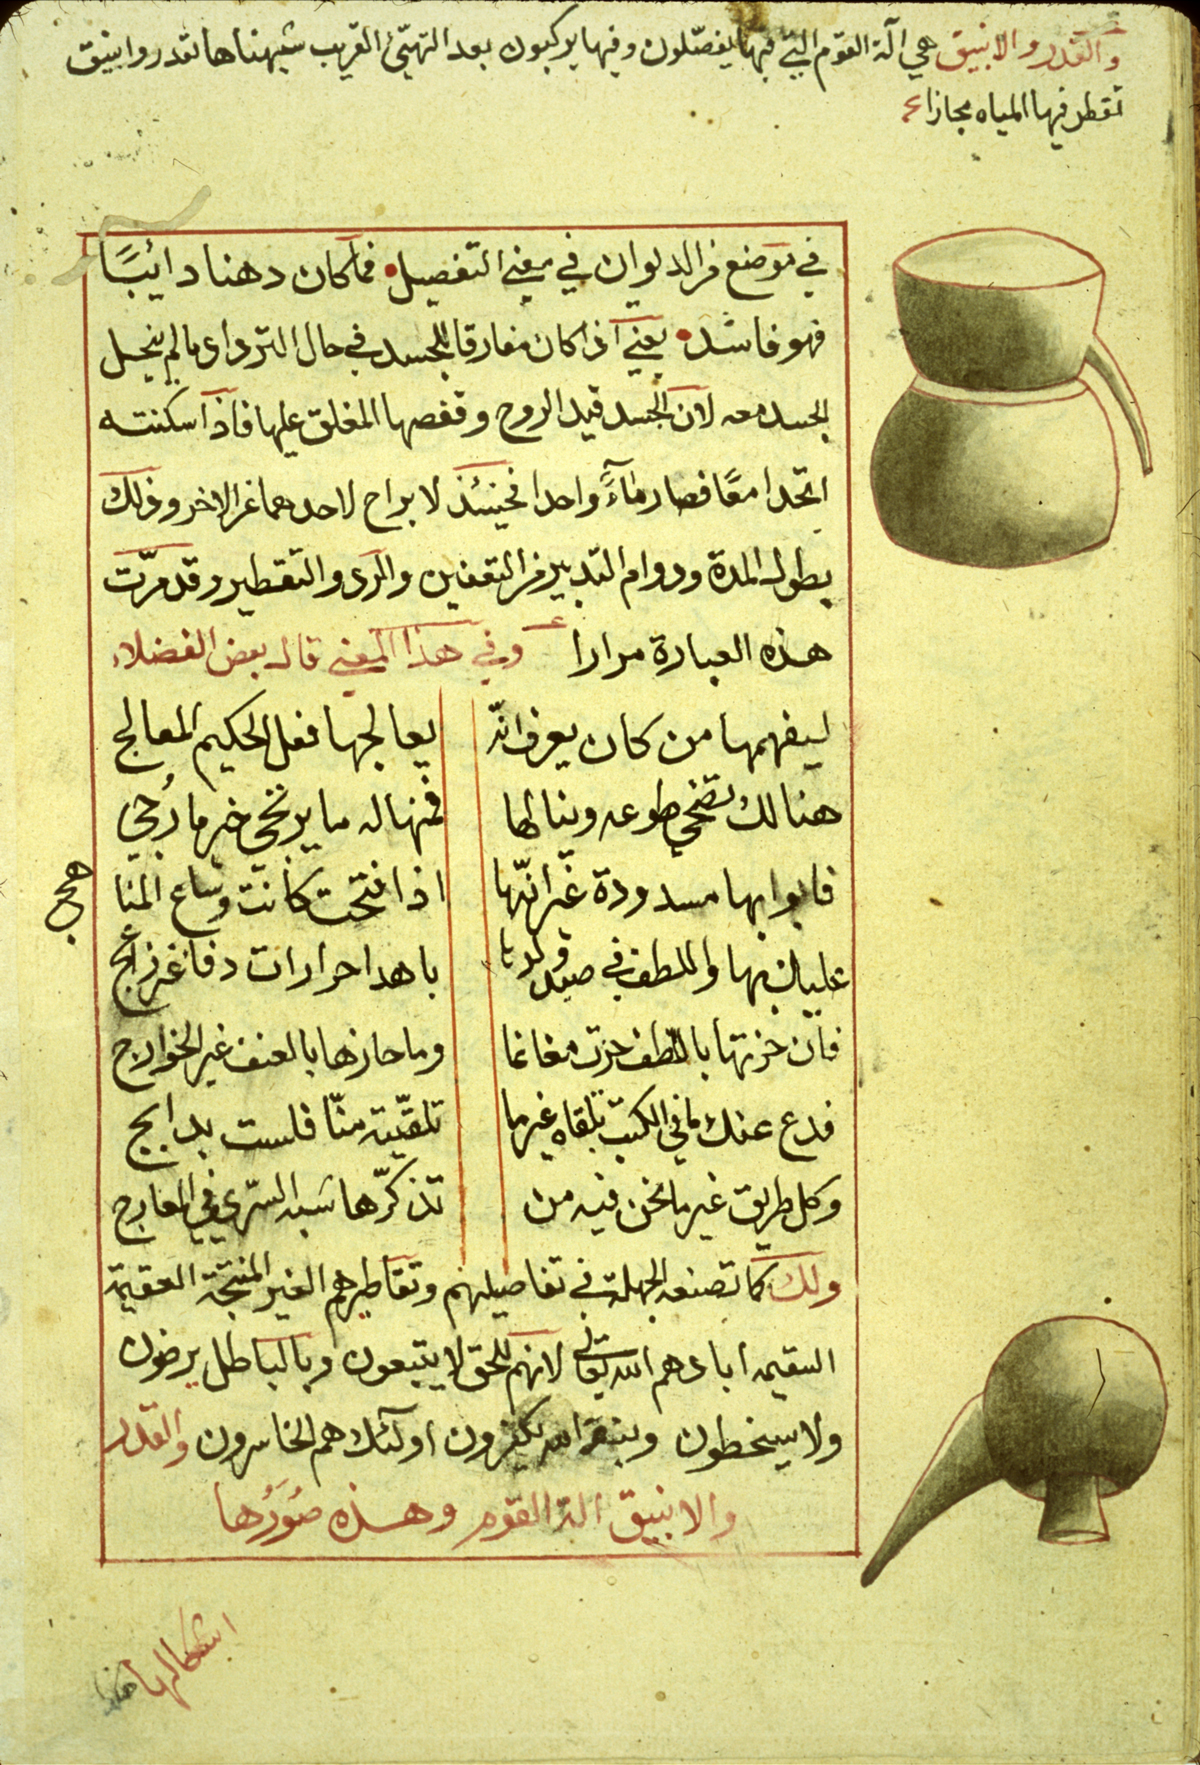 islamic medical manuscripts alchemy 50 folio 80b of ab363 al q257sim mu7717ammad ibn abd all257h al an7779257r299 s shar7717